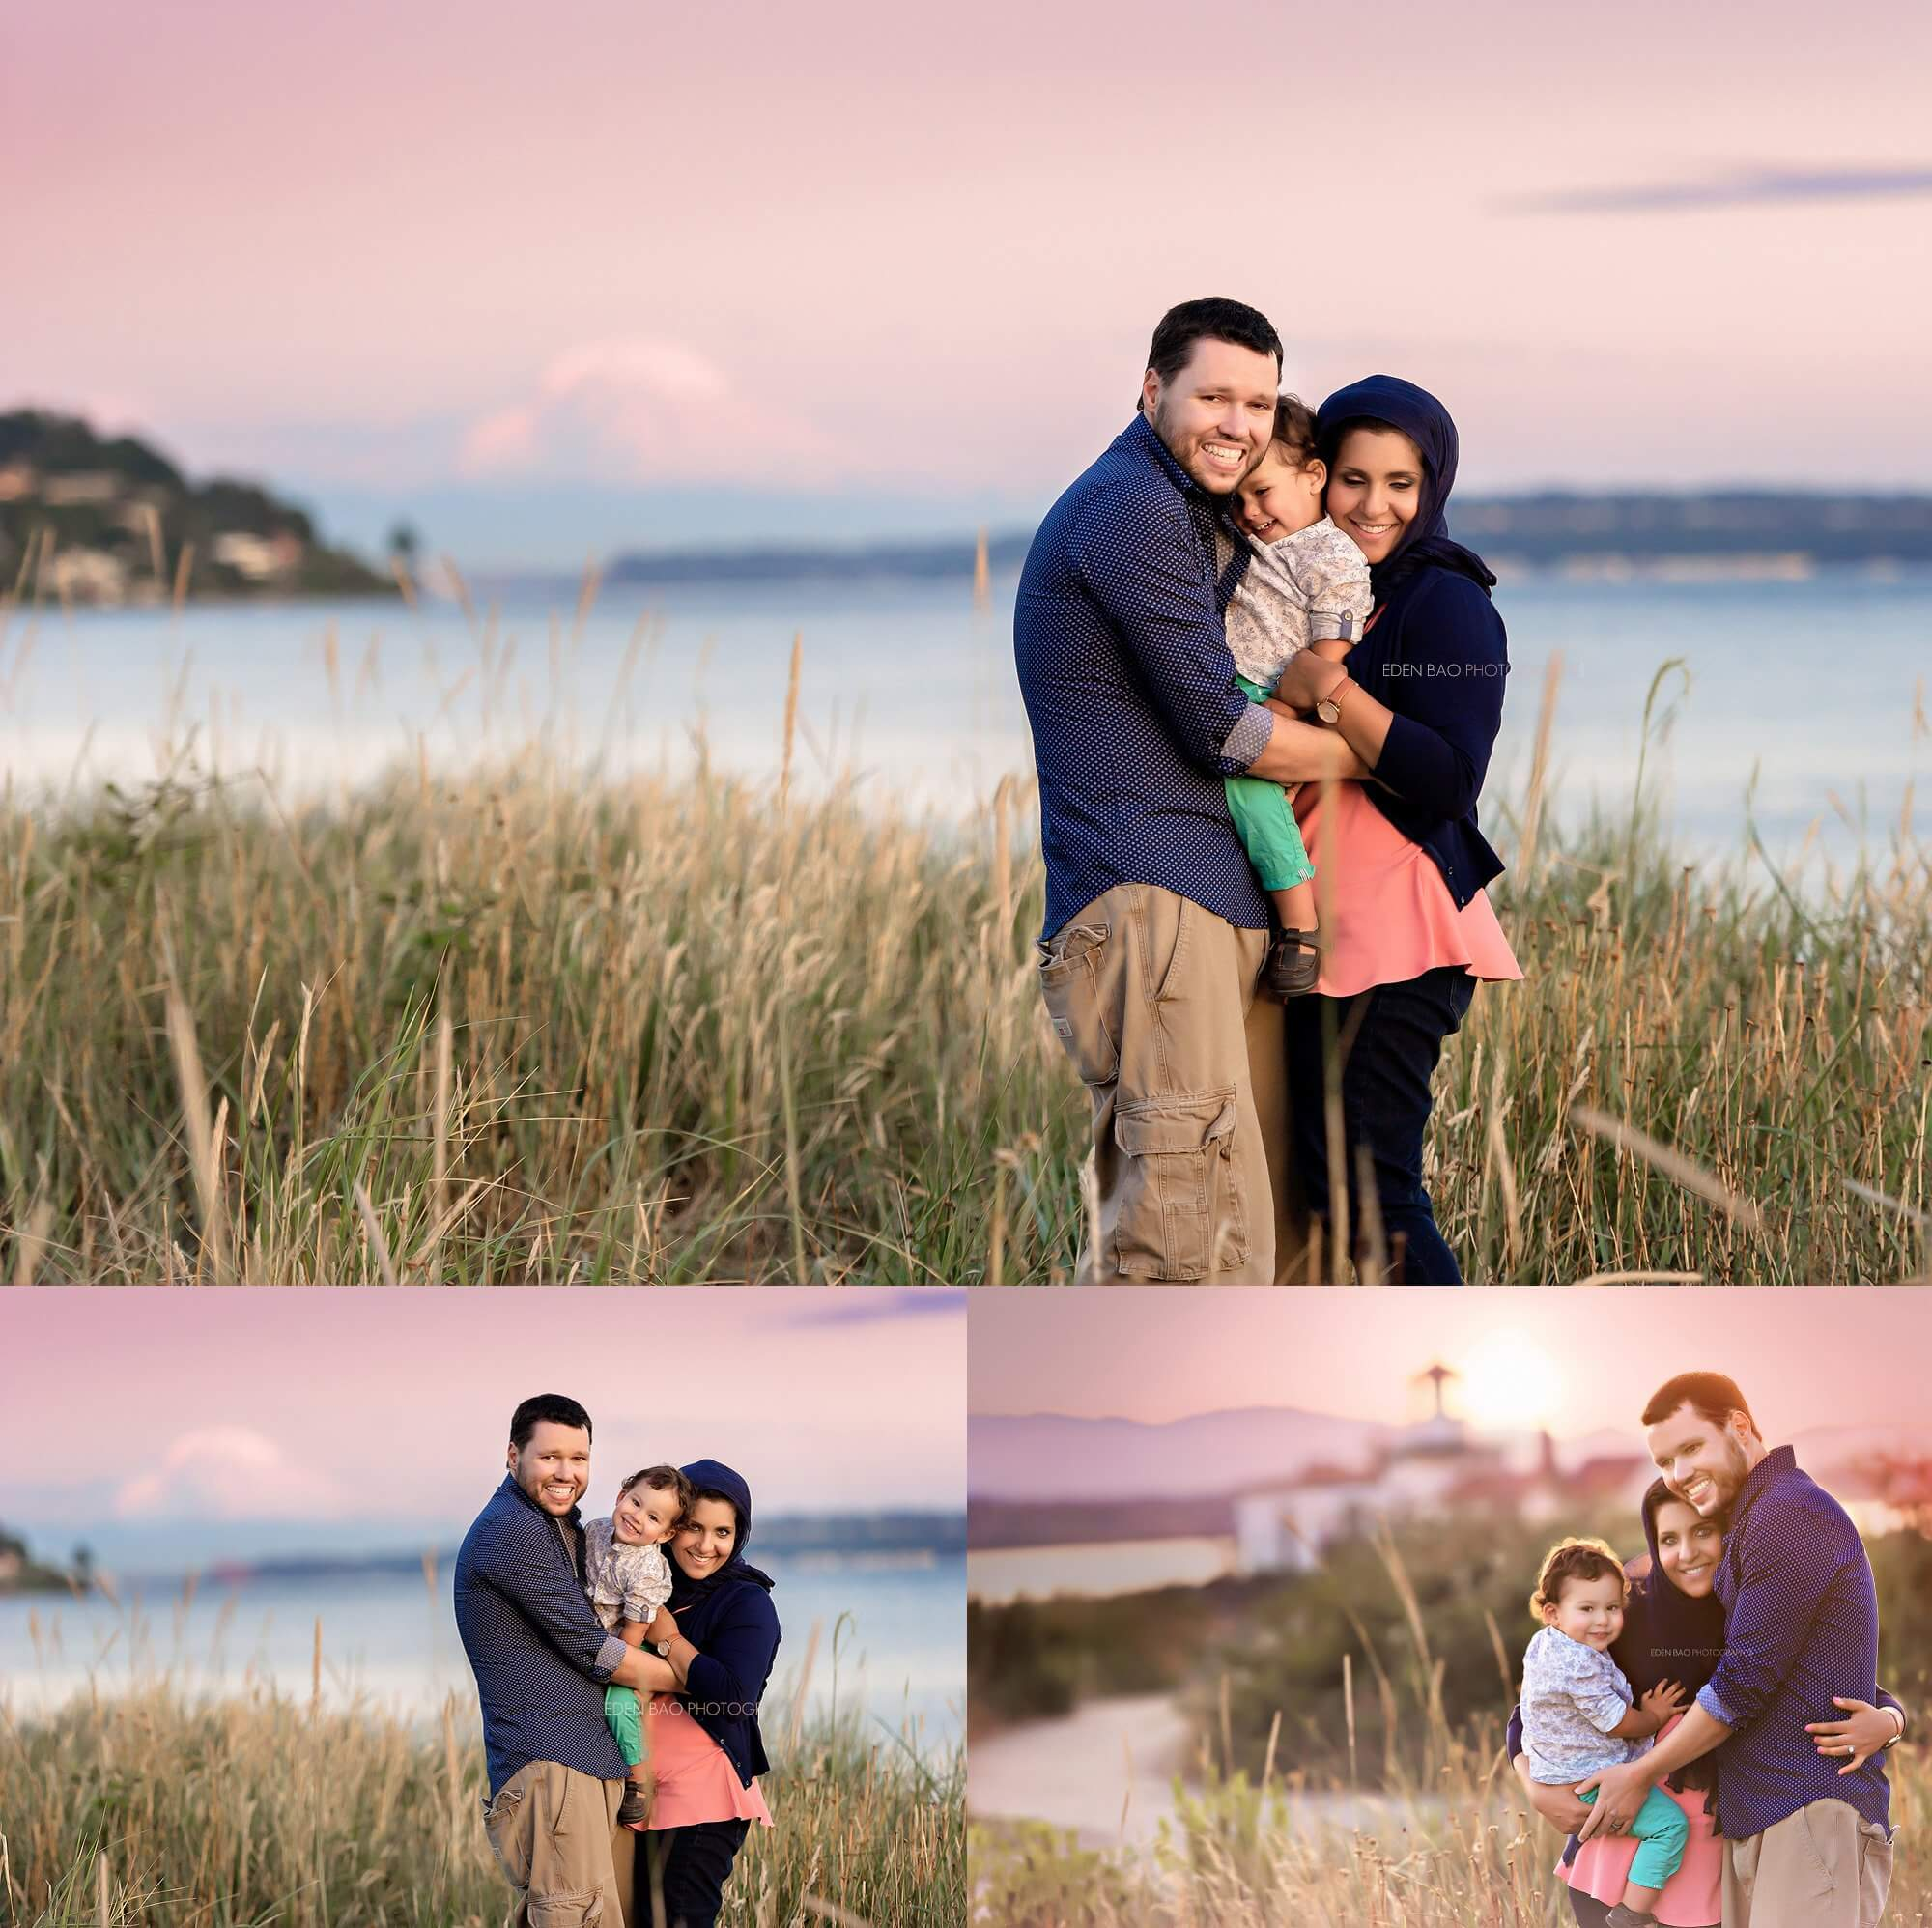 Seattle Family Photographers Discovery Park Beach